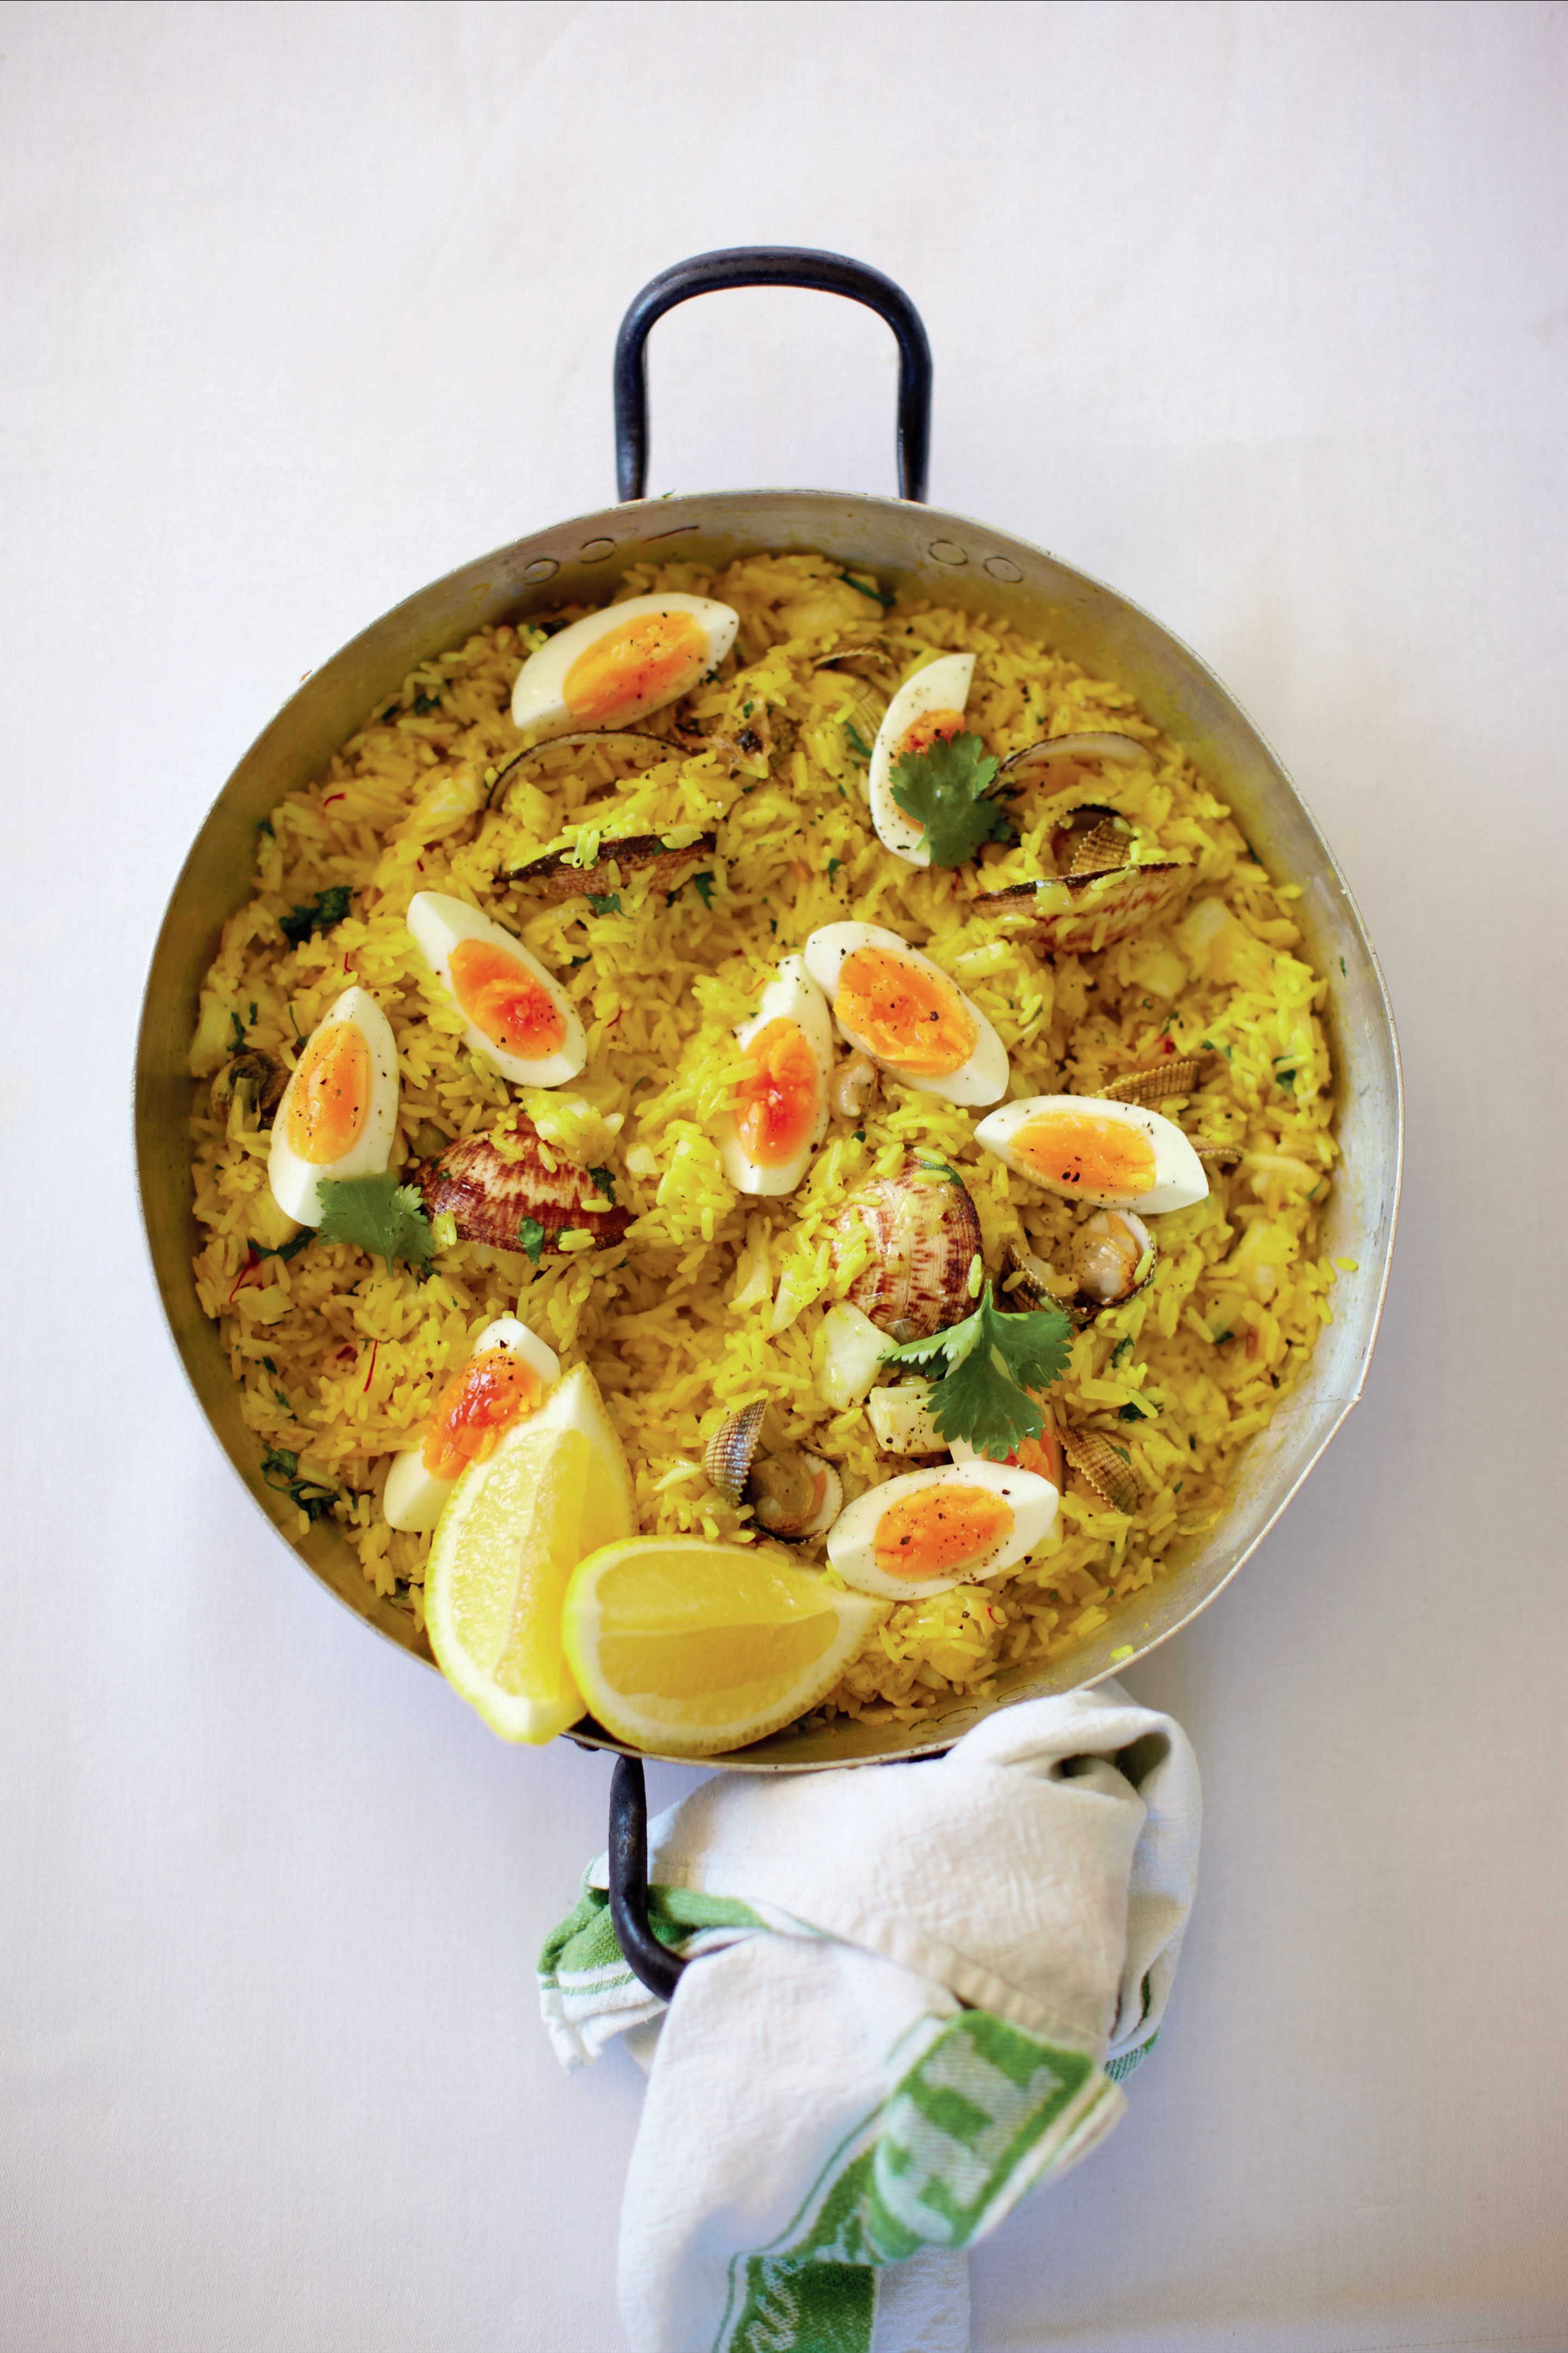 Cockle and clam kedgeree